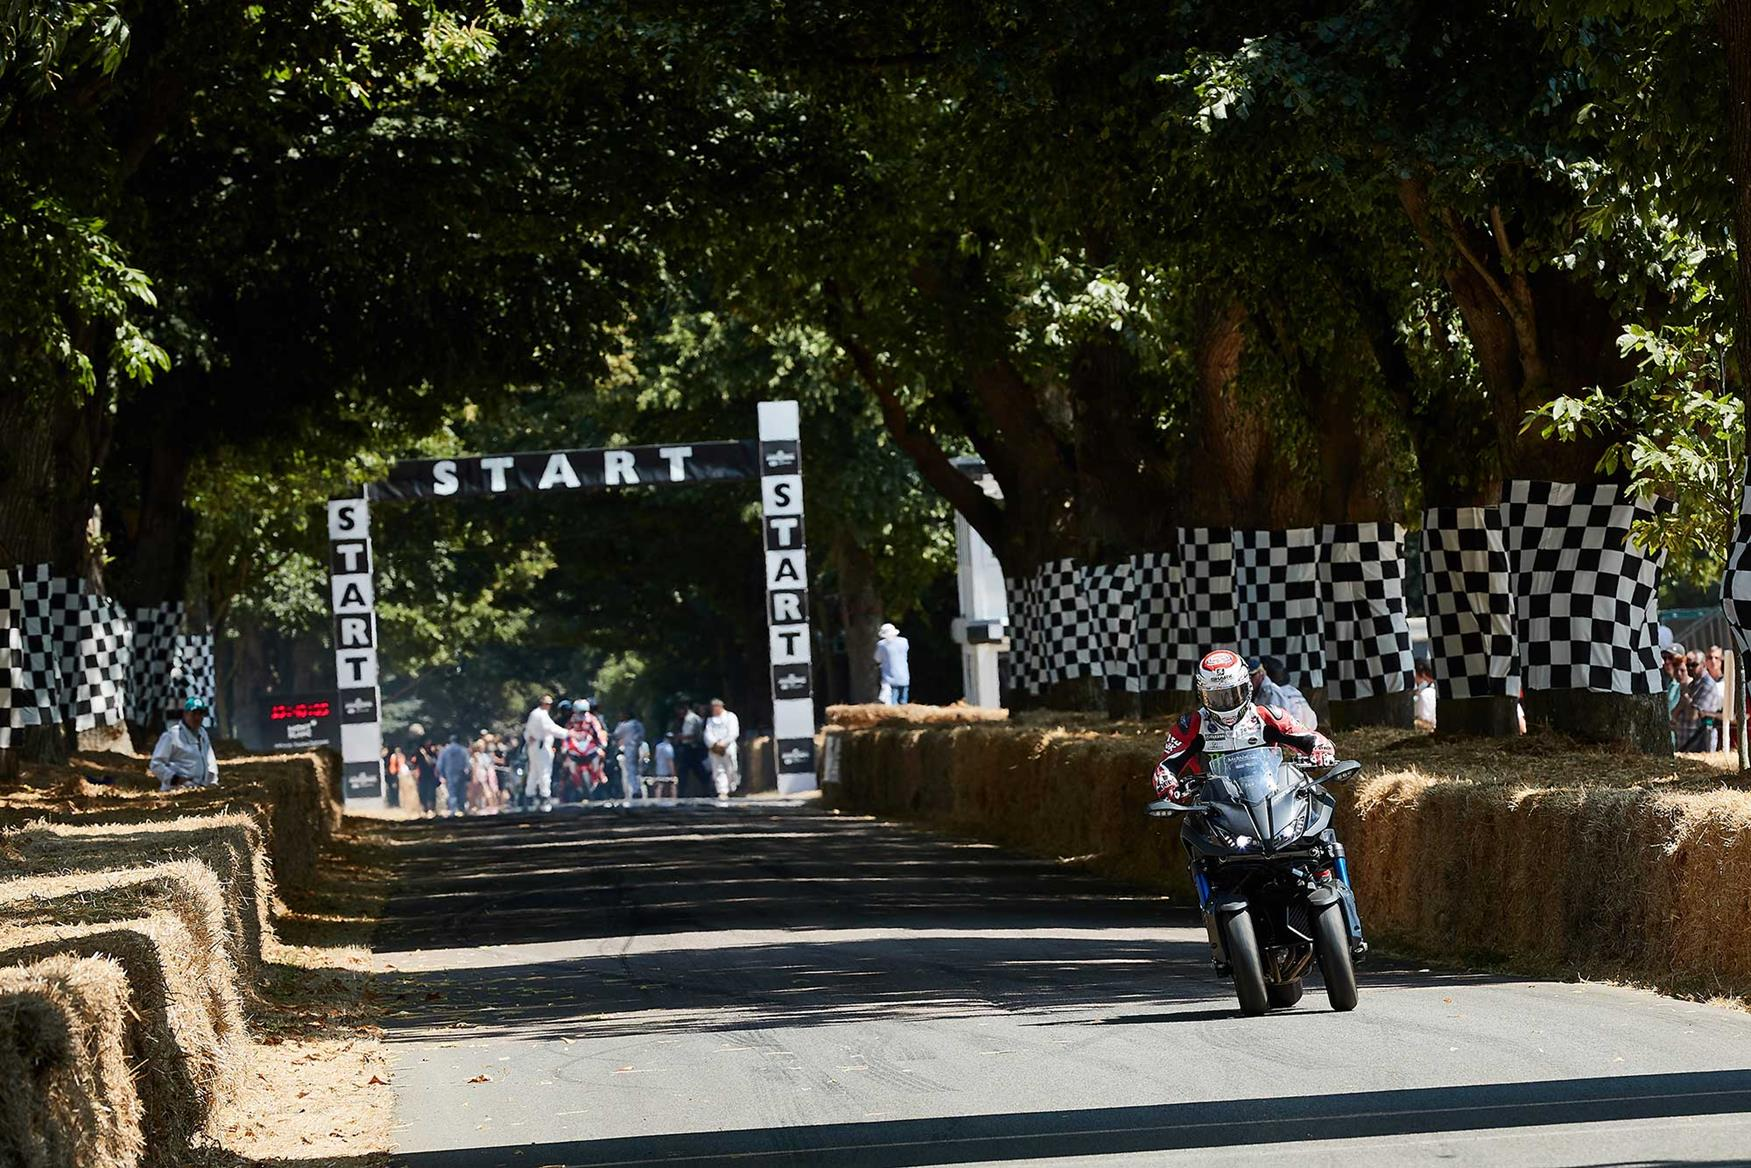 Alex Lowes rides a Yamaha Niken up the start of the famous Goodwood hill-climb